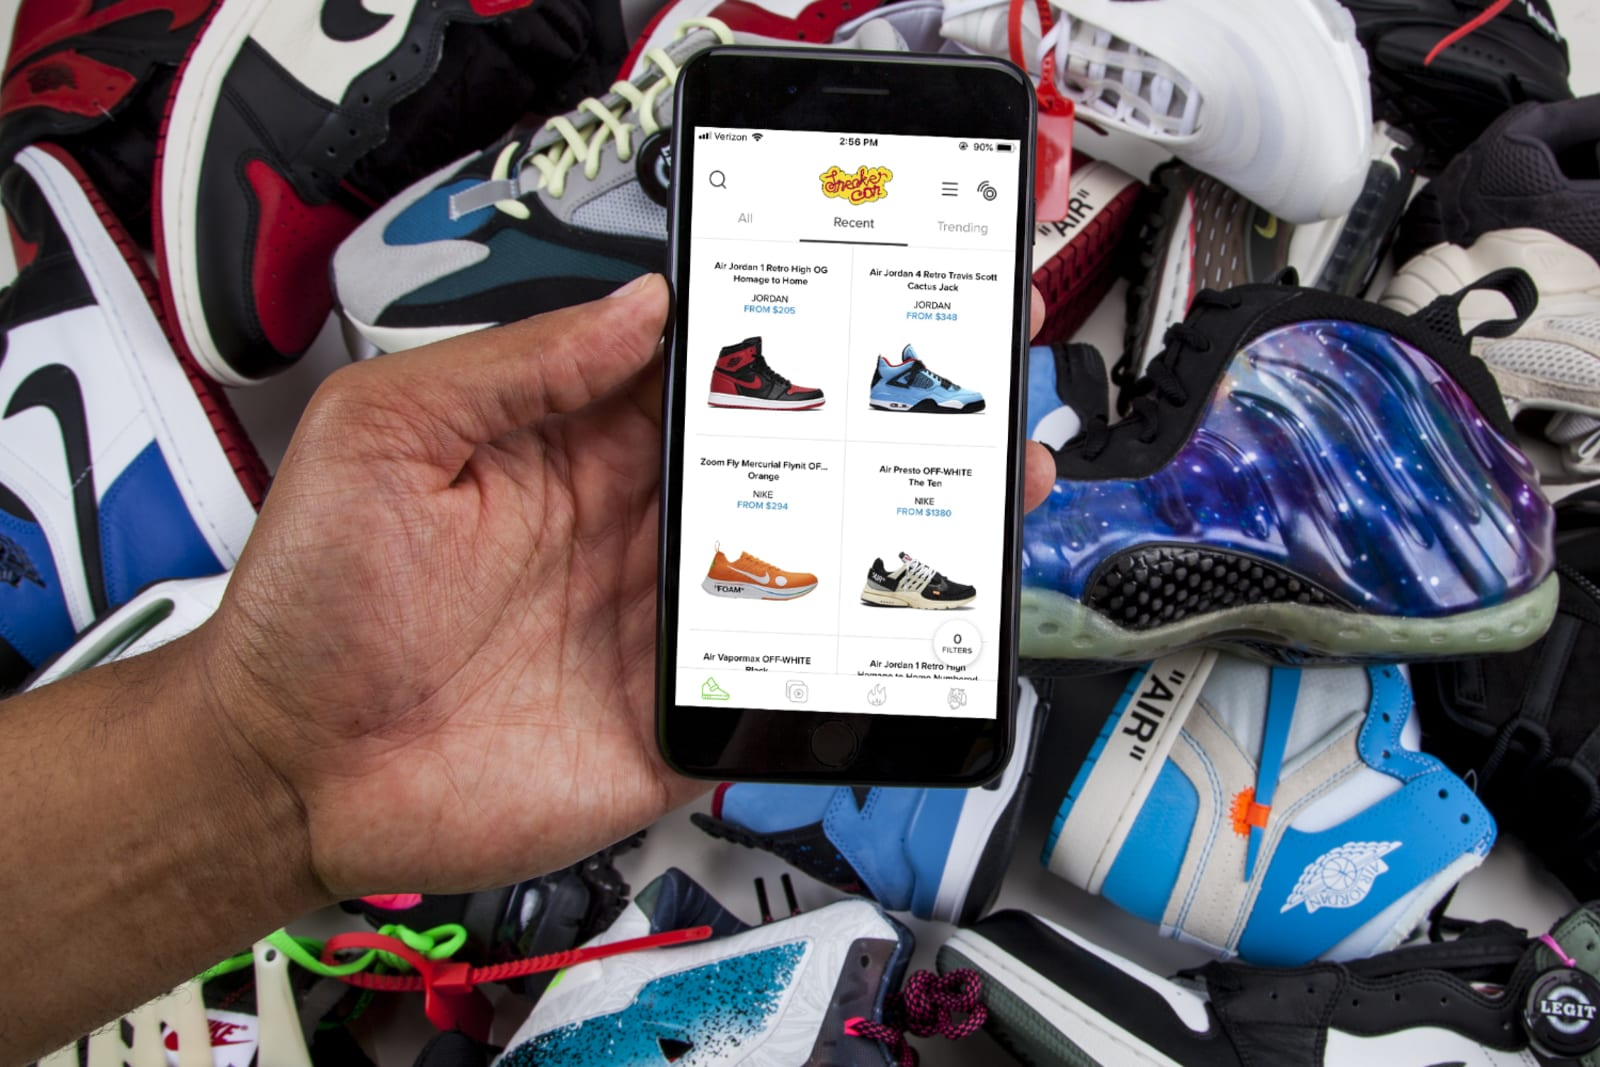 91d54086fa7d The best apps for buying sneakers